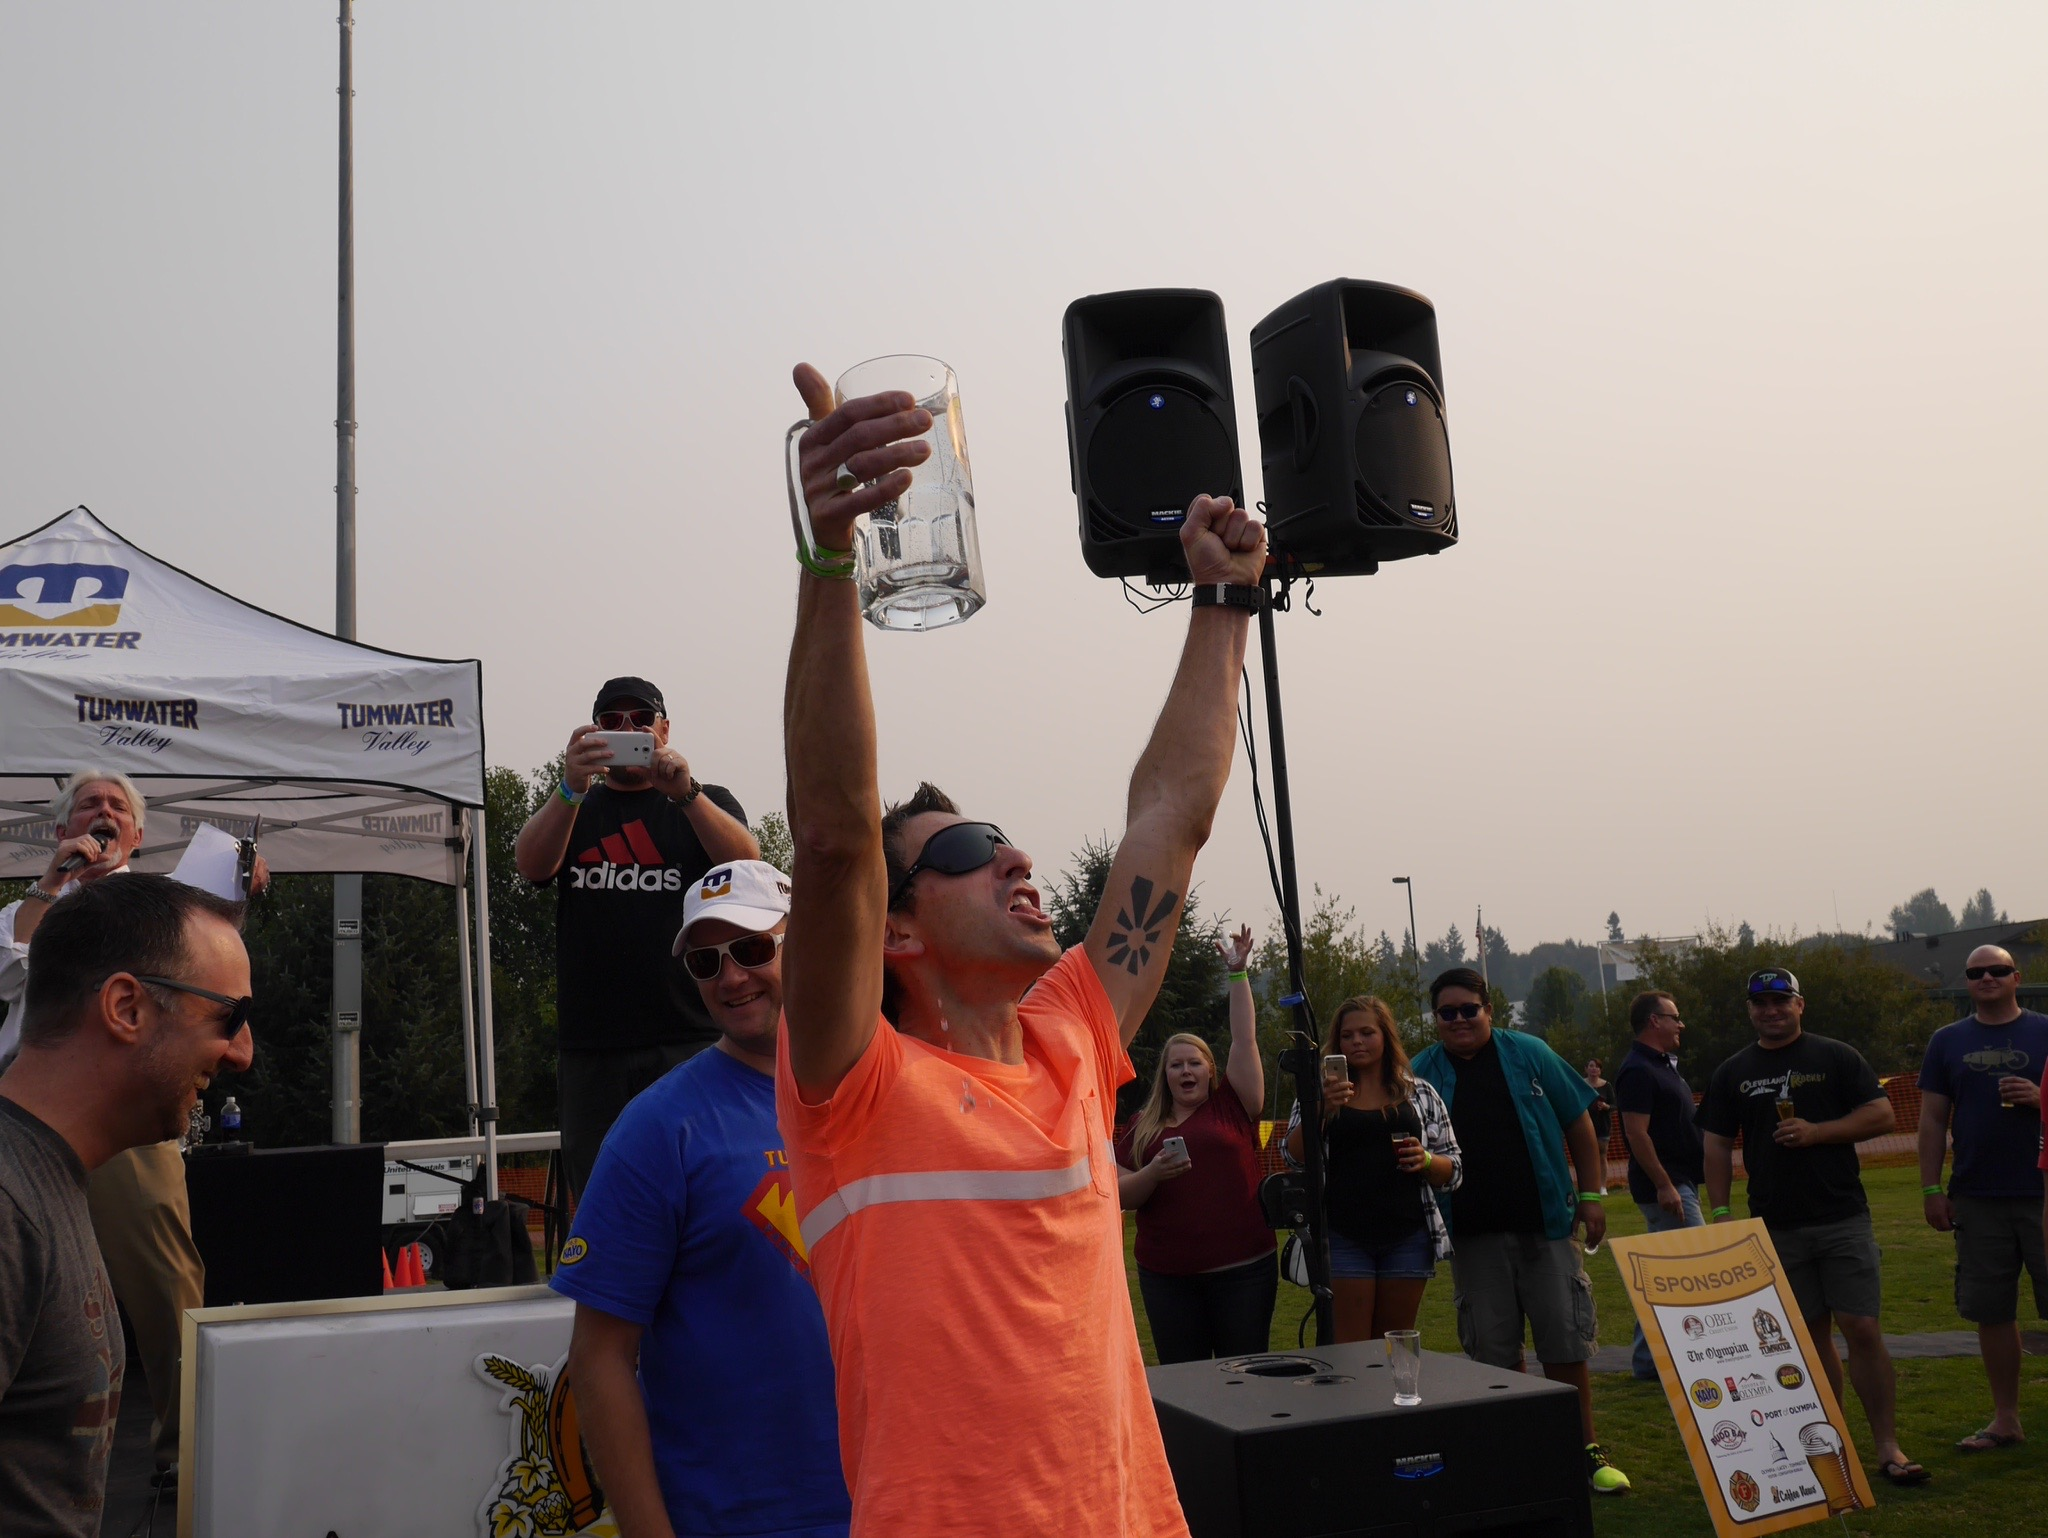 The winner of the Stein Holiding Contest at the Tumwater Artesian Brewfest. (photo by Cat Stelzer)